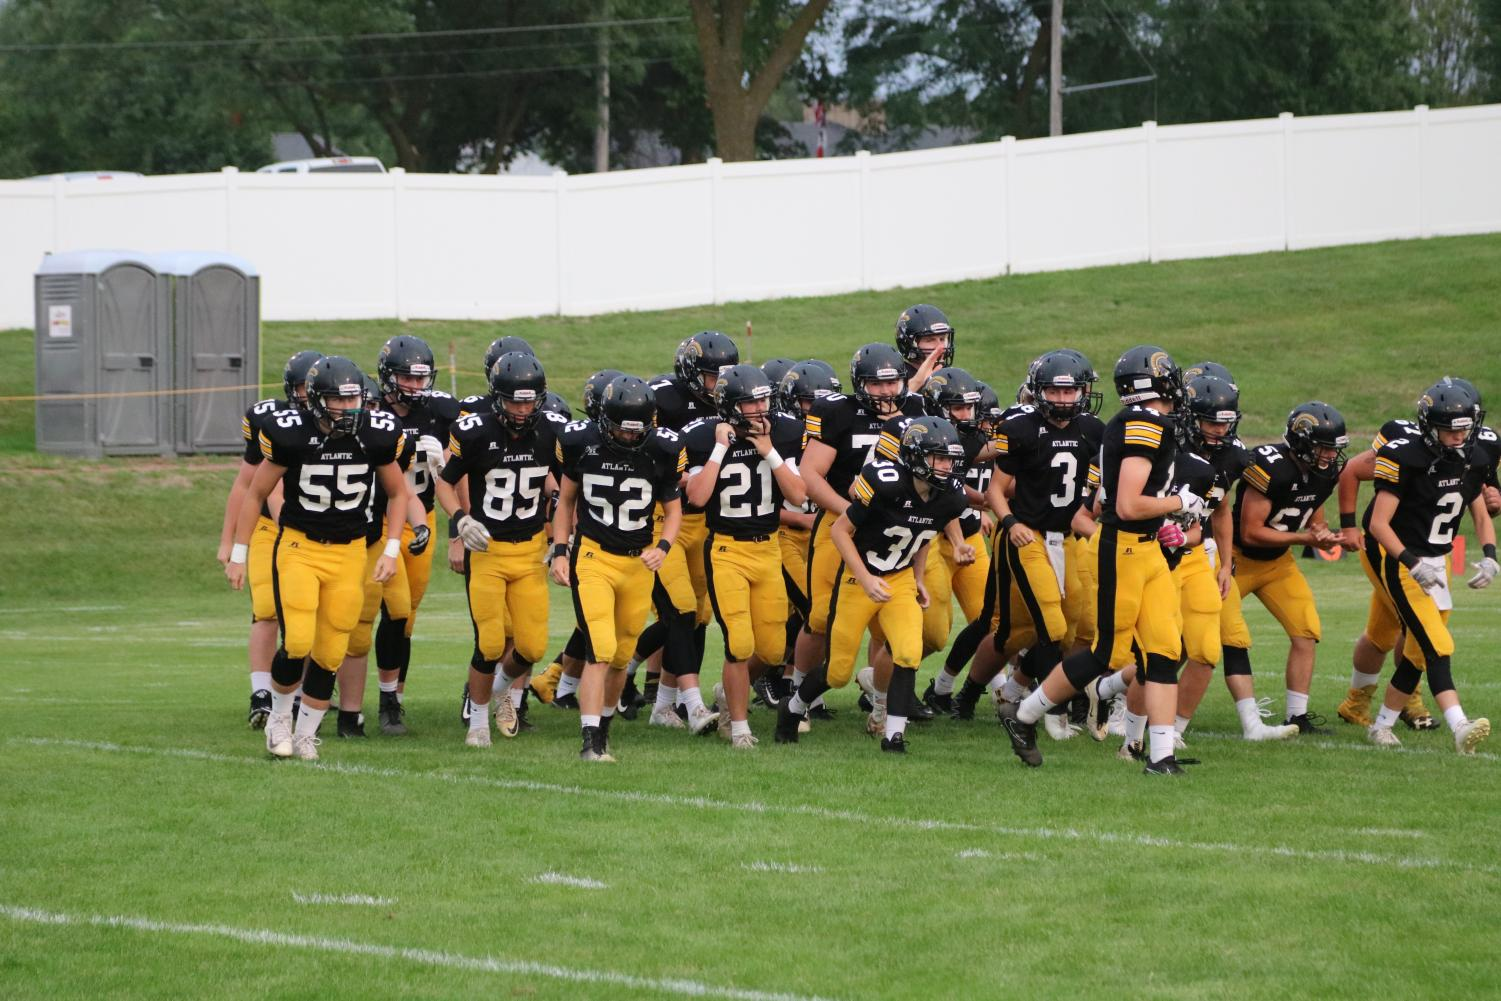 Team gets fired up before their 42-14 commanding win over the Shenandoah Mustangs in the second game of season.